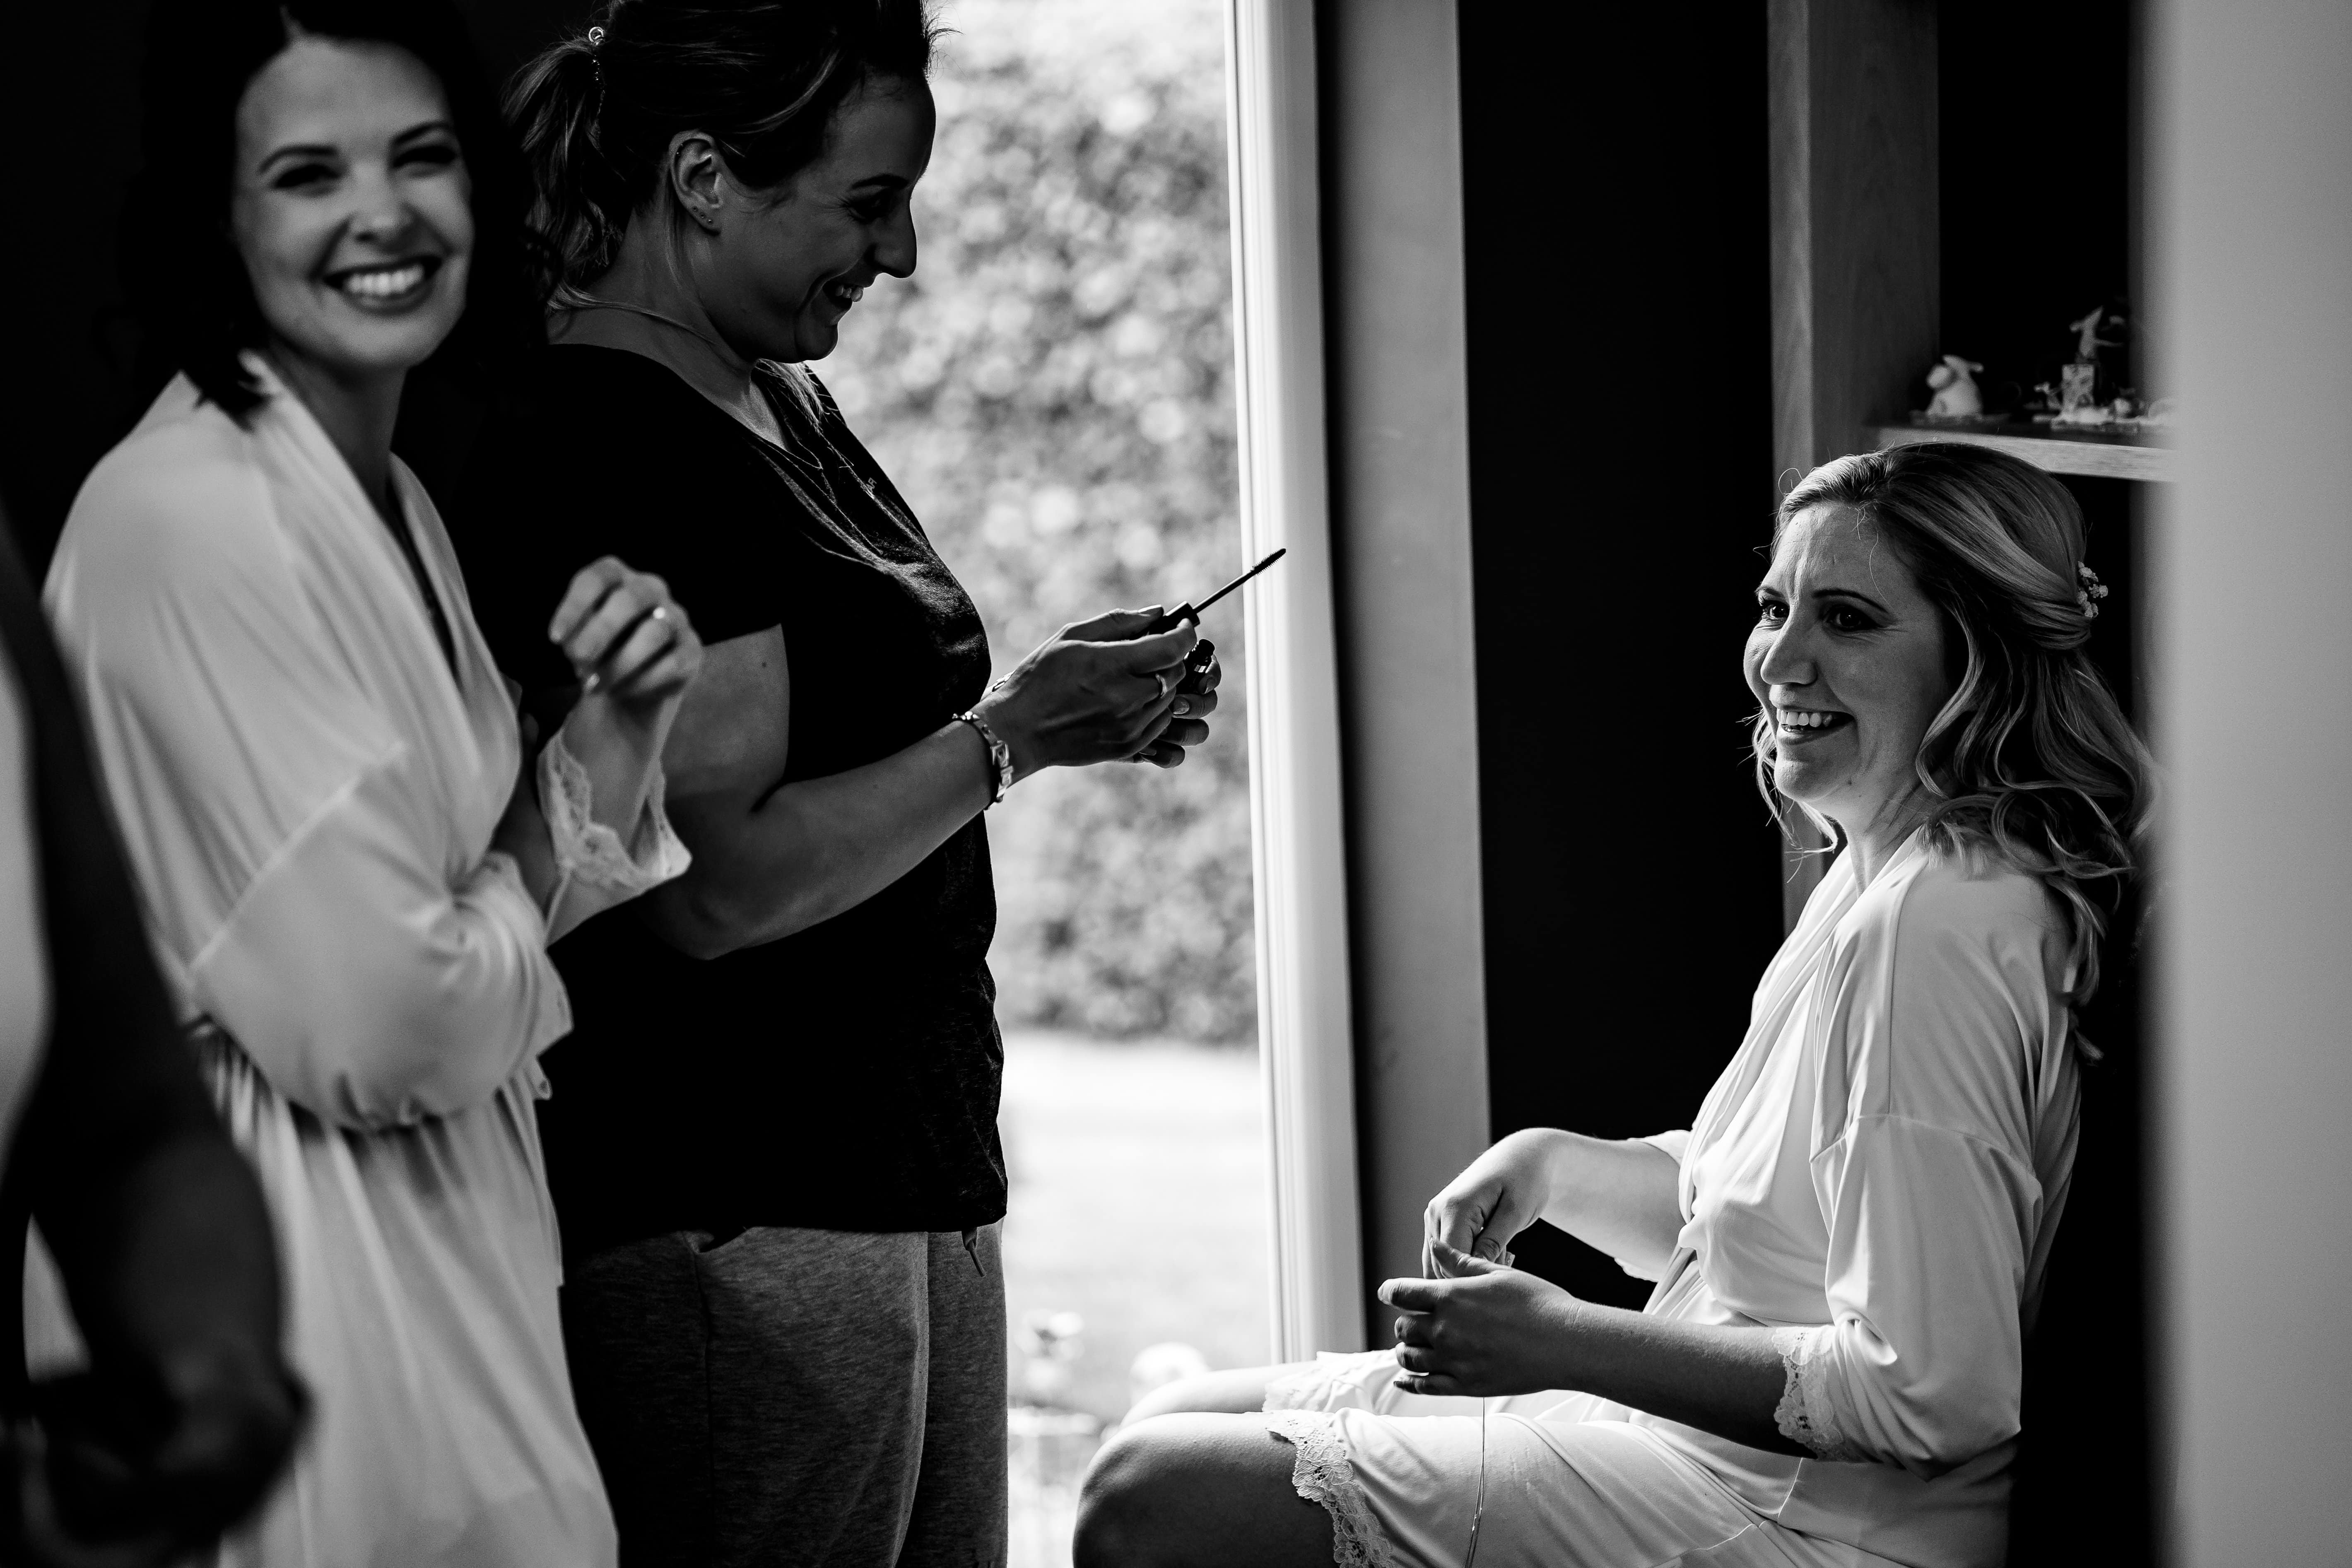 Bride, Candid, Derbyshire, Derbyshire wedding photographer, documentary, award winning photographer, weddings, wedding day, wedding photographer near me, Nottinghamshire wedding photographer, Nottingham Wedding Photographer, Norwood Park Wedding Venue